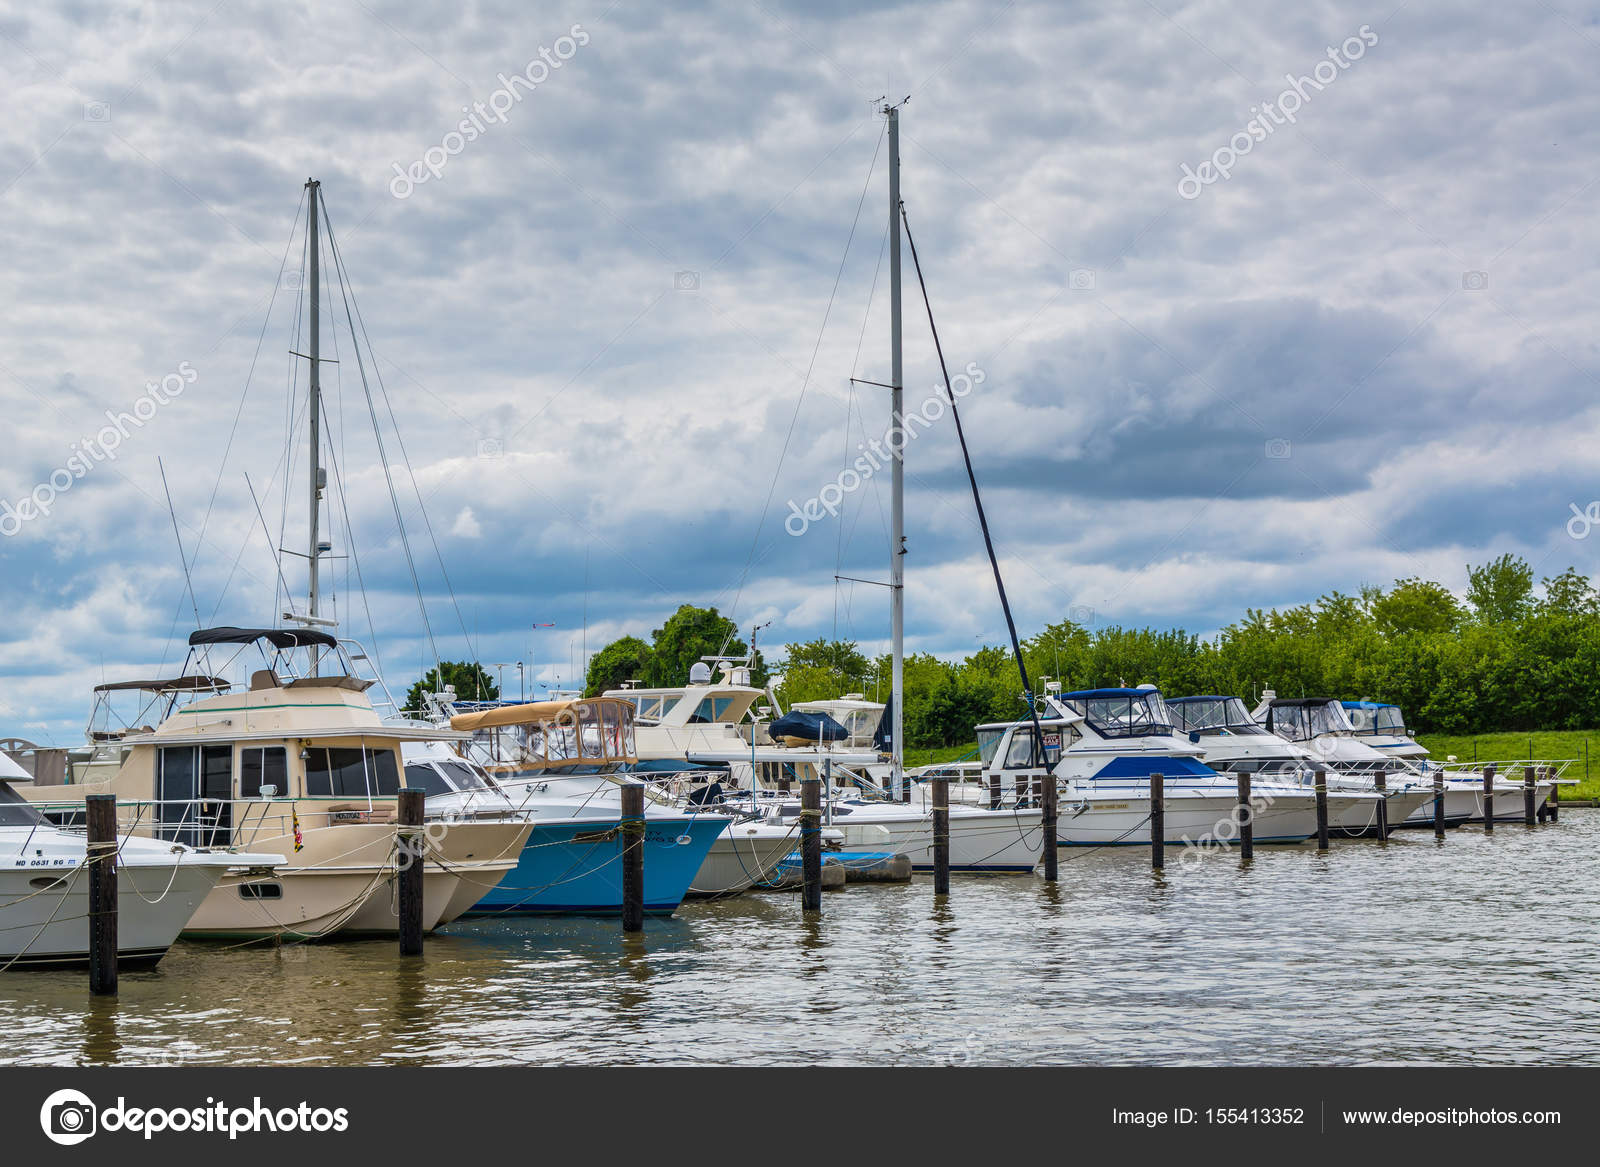 Boats in a marina in Havre de Grace, Maryland  — Stock Photo